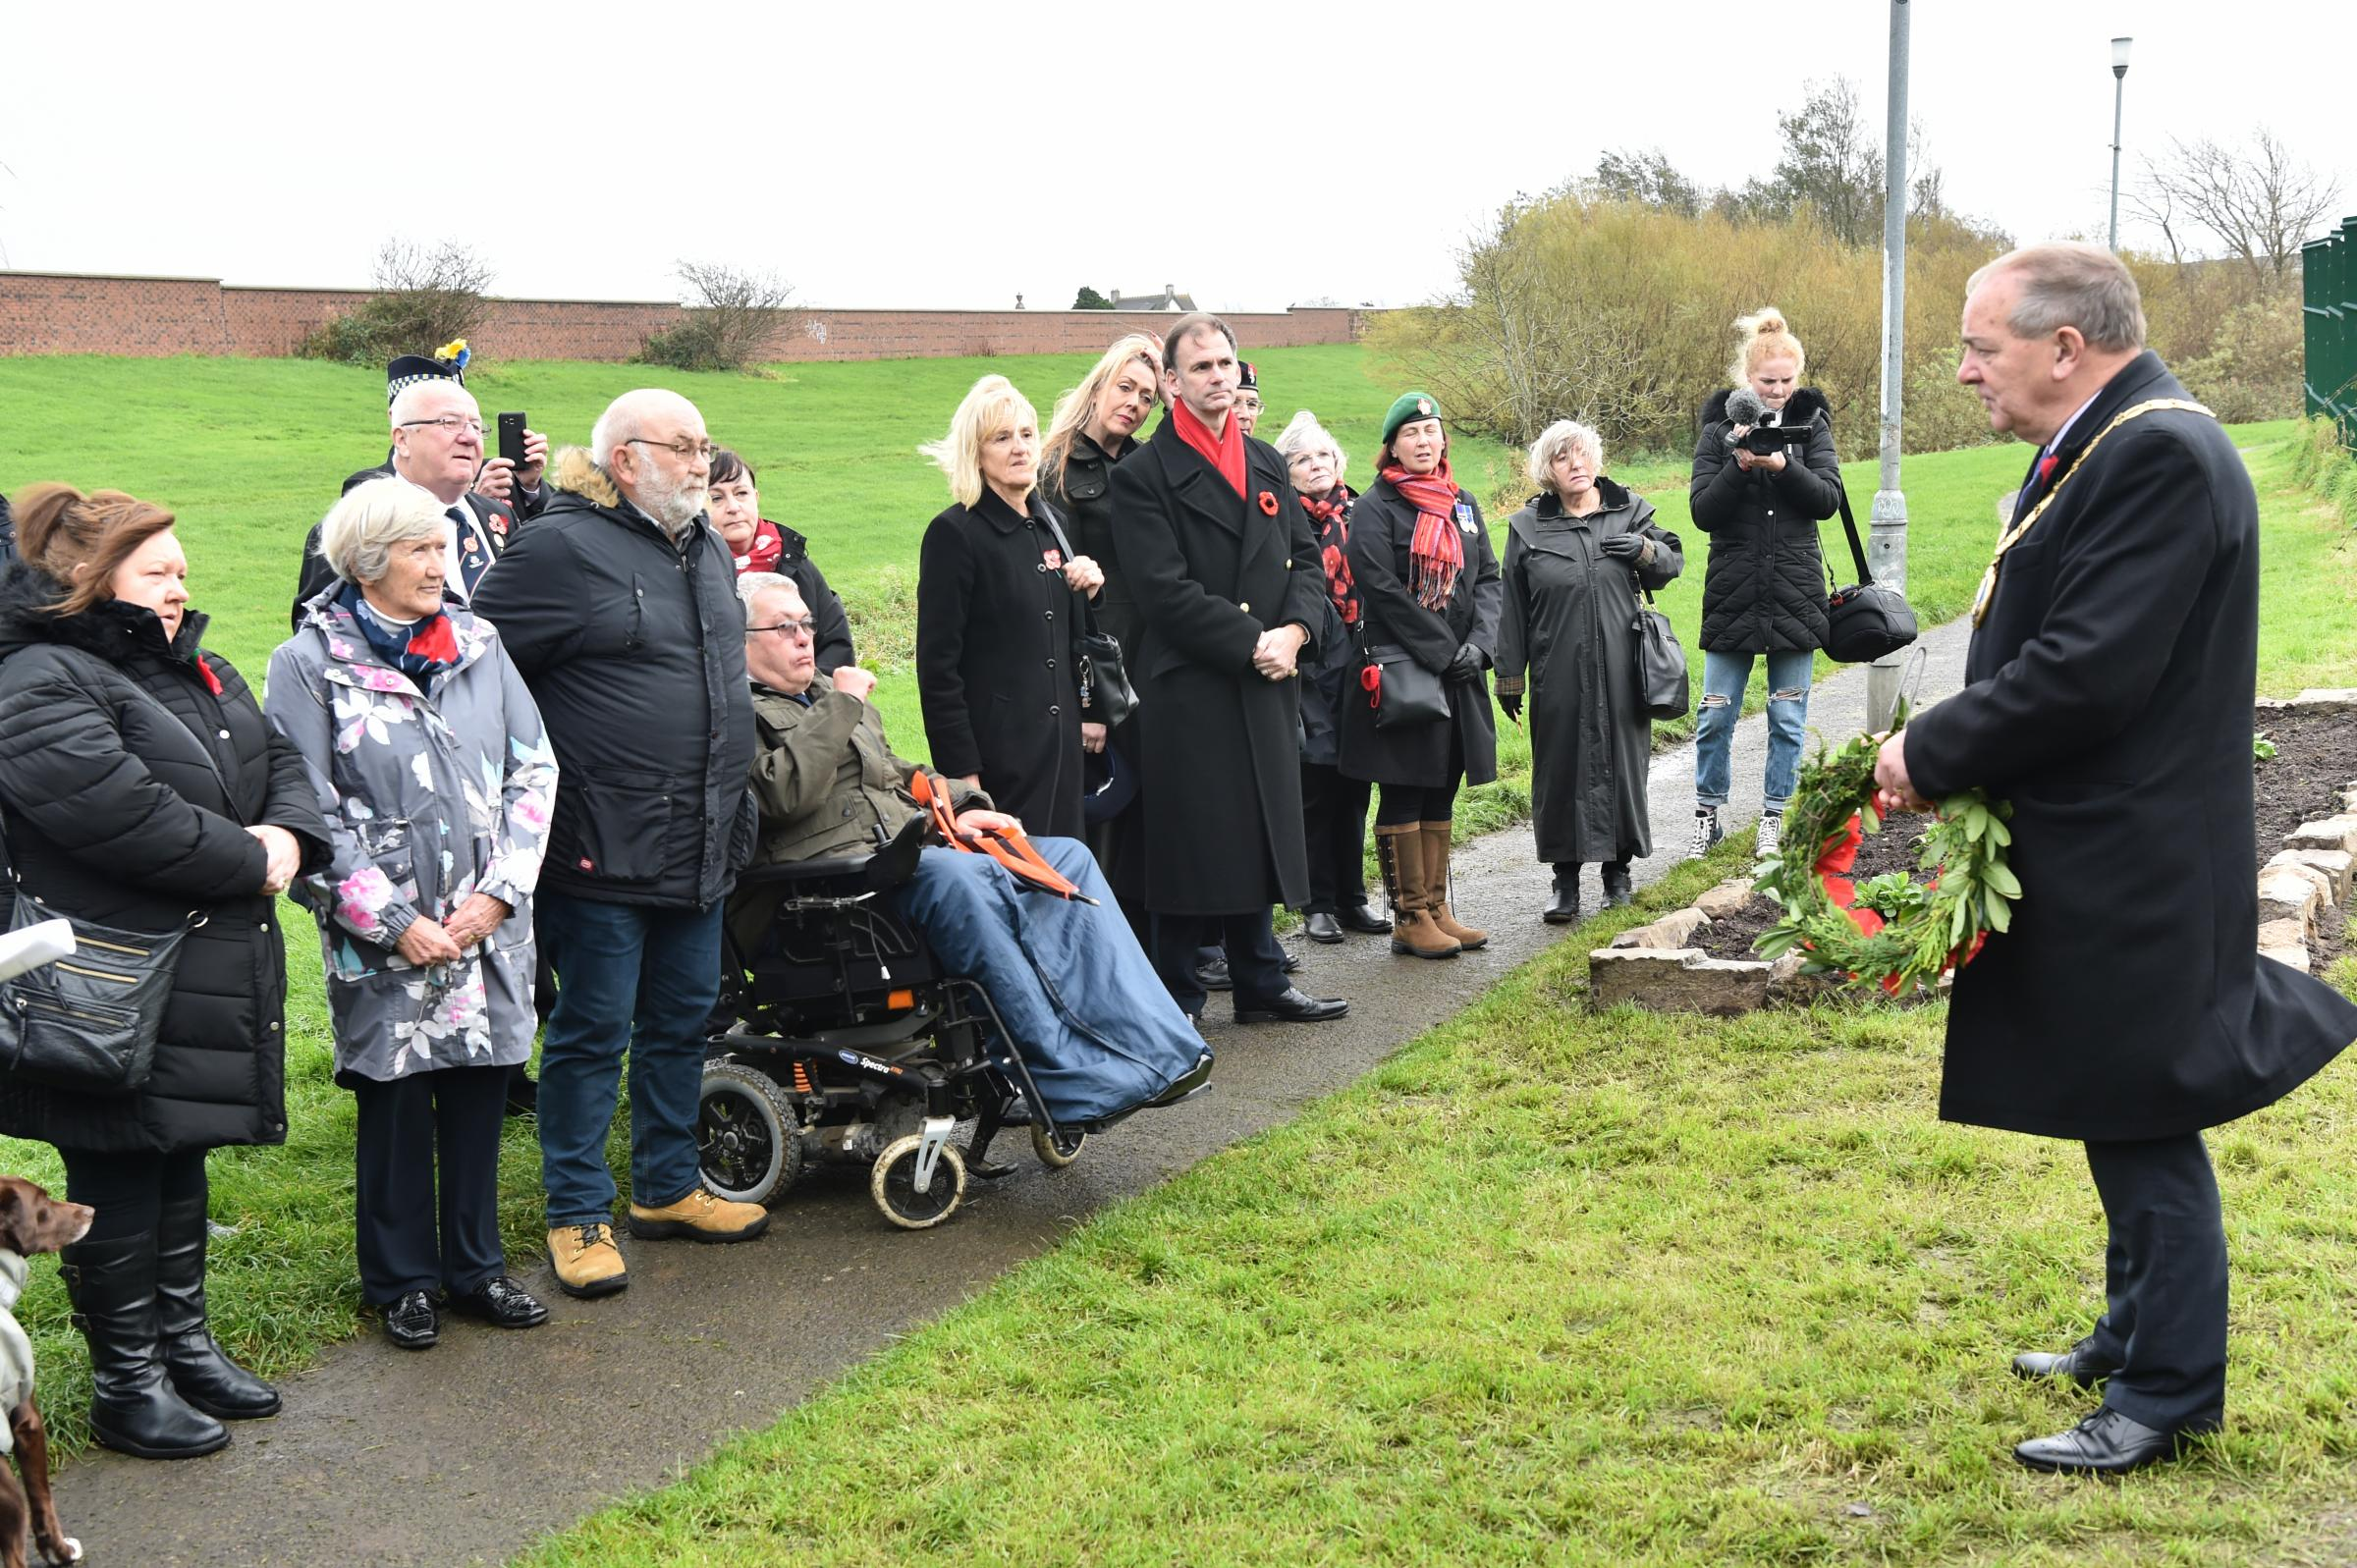 Memorial garden opened at Elm ParkProvost Clarkson plants memorial tree to commemorate  WW1 soldiers.